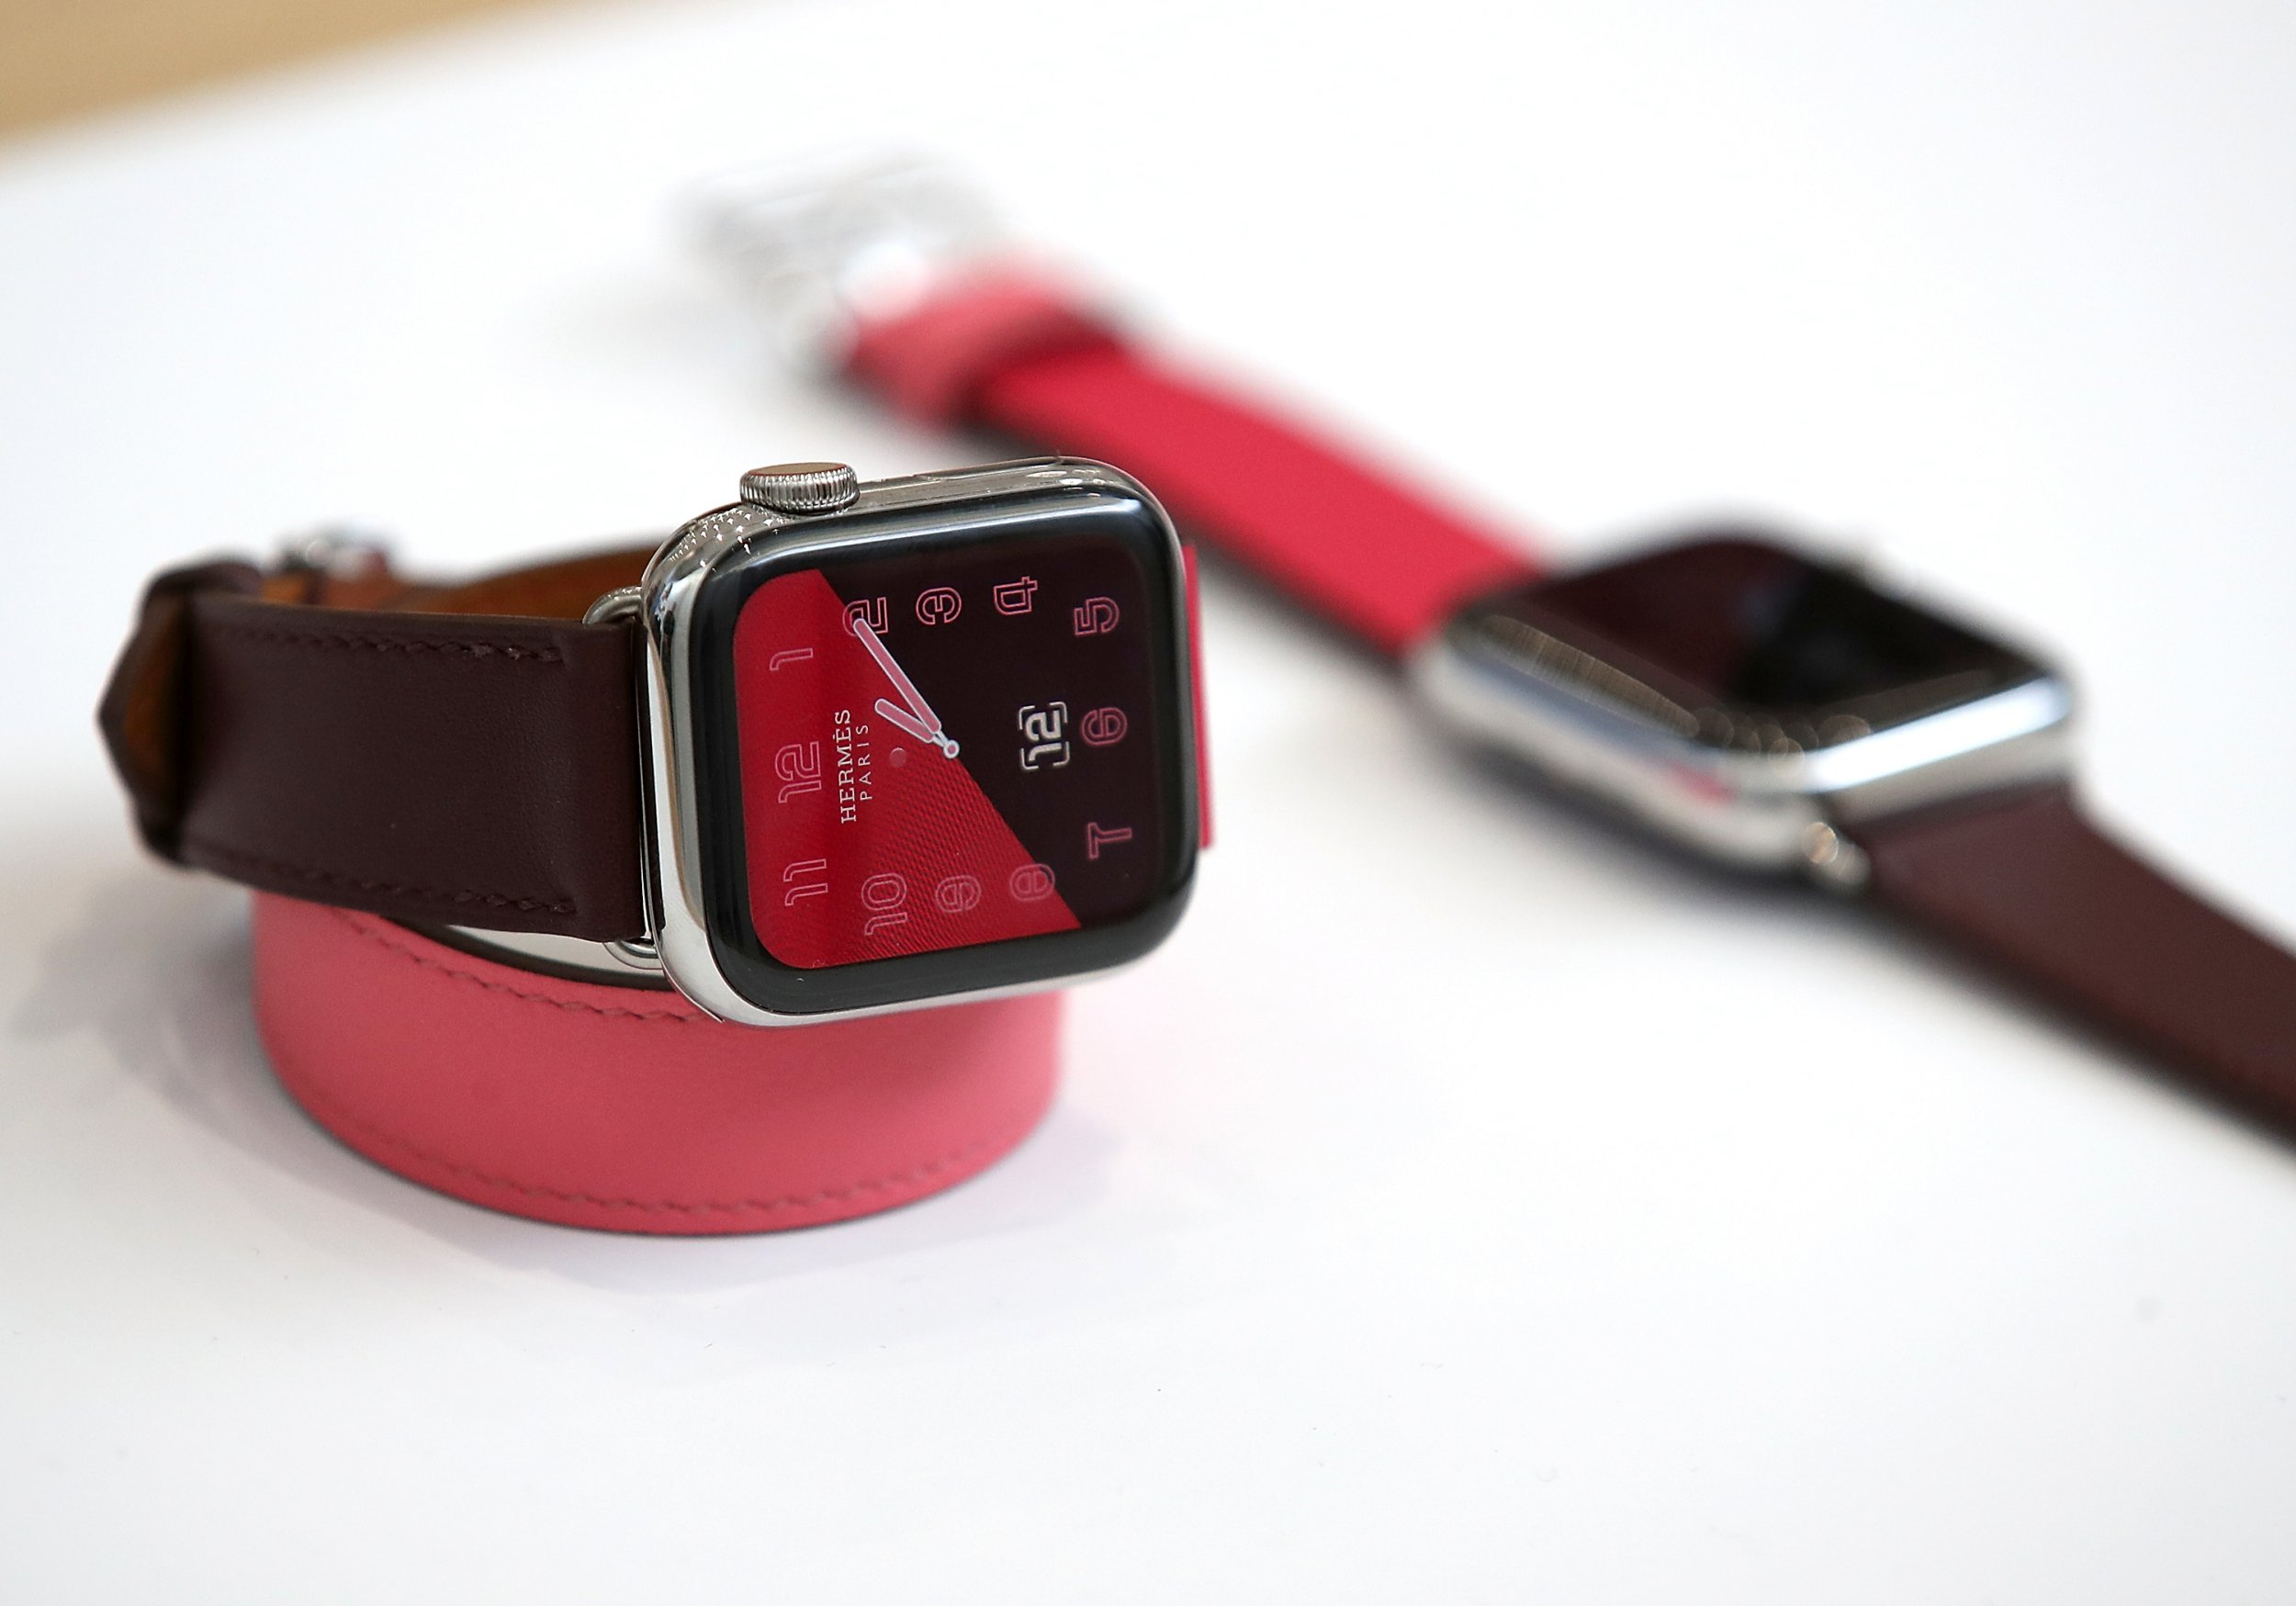 CUPERTINO, CA - SEPTEMBER 12: The new Apple Watch Series 4 is displayed during an Apple special event at the Steve Jobs Theatre on September 12, 2018 in Cupertino, California. Apple released three new versions of the iPhone and an updated Apple Watch. (Photo by Justin Sullivan/Getty Images)